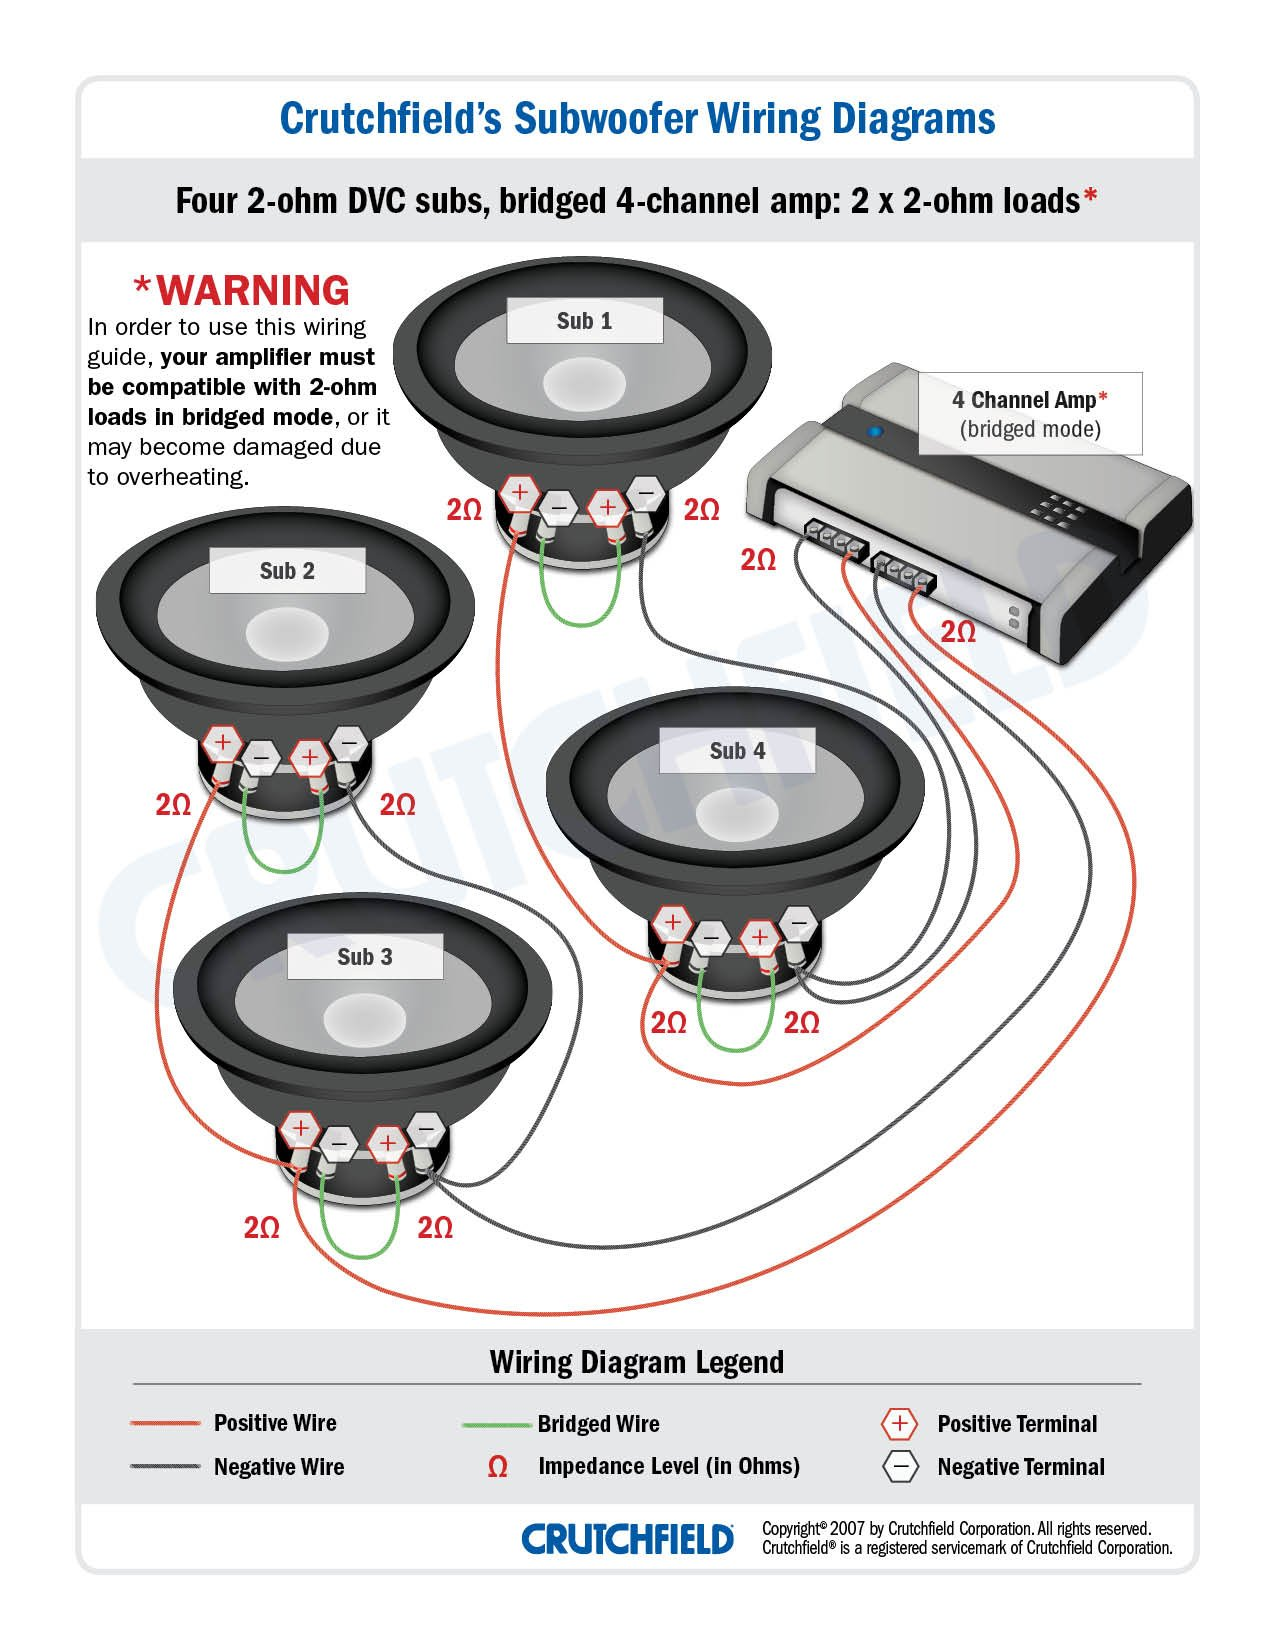 Subwoofer Wiring Diagrams - Crutchfield car wiring diagram